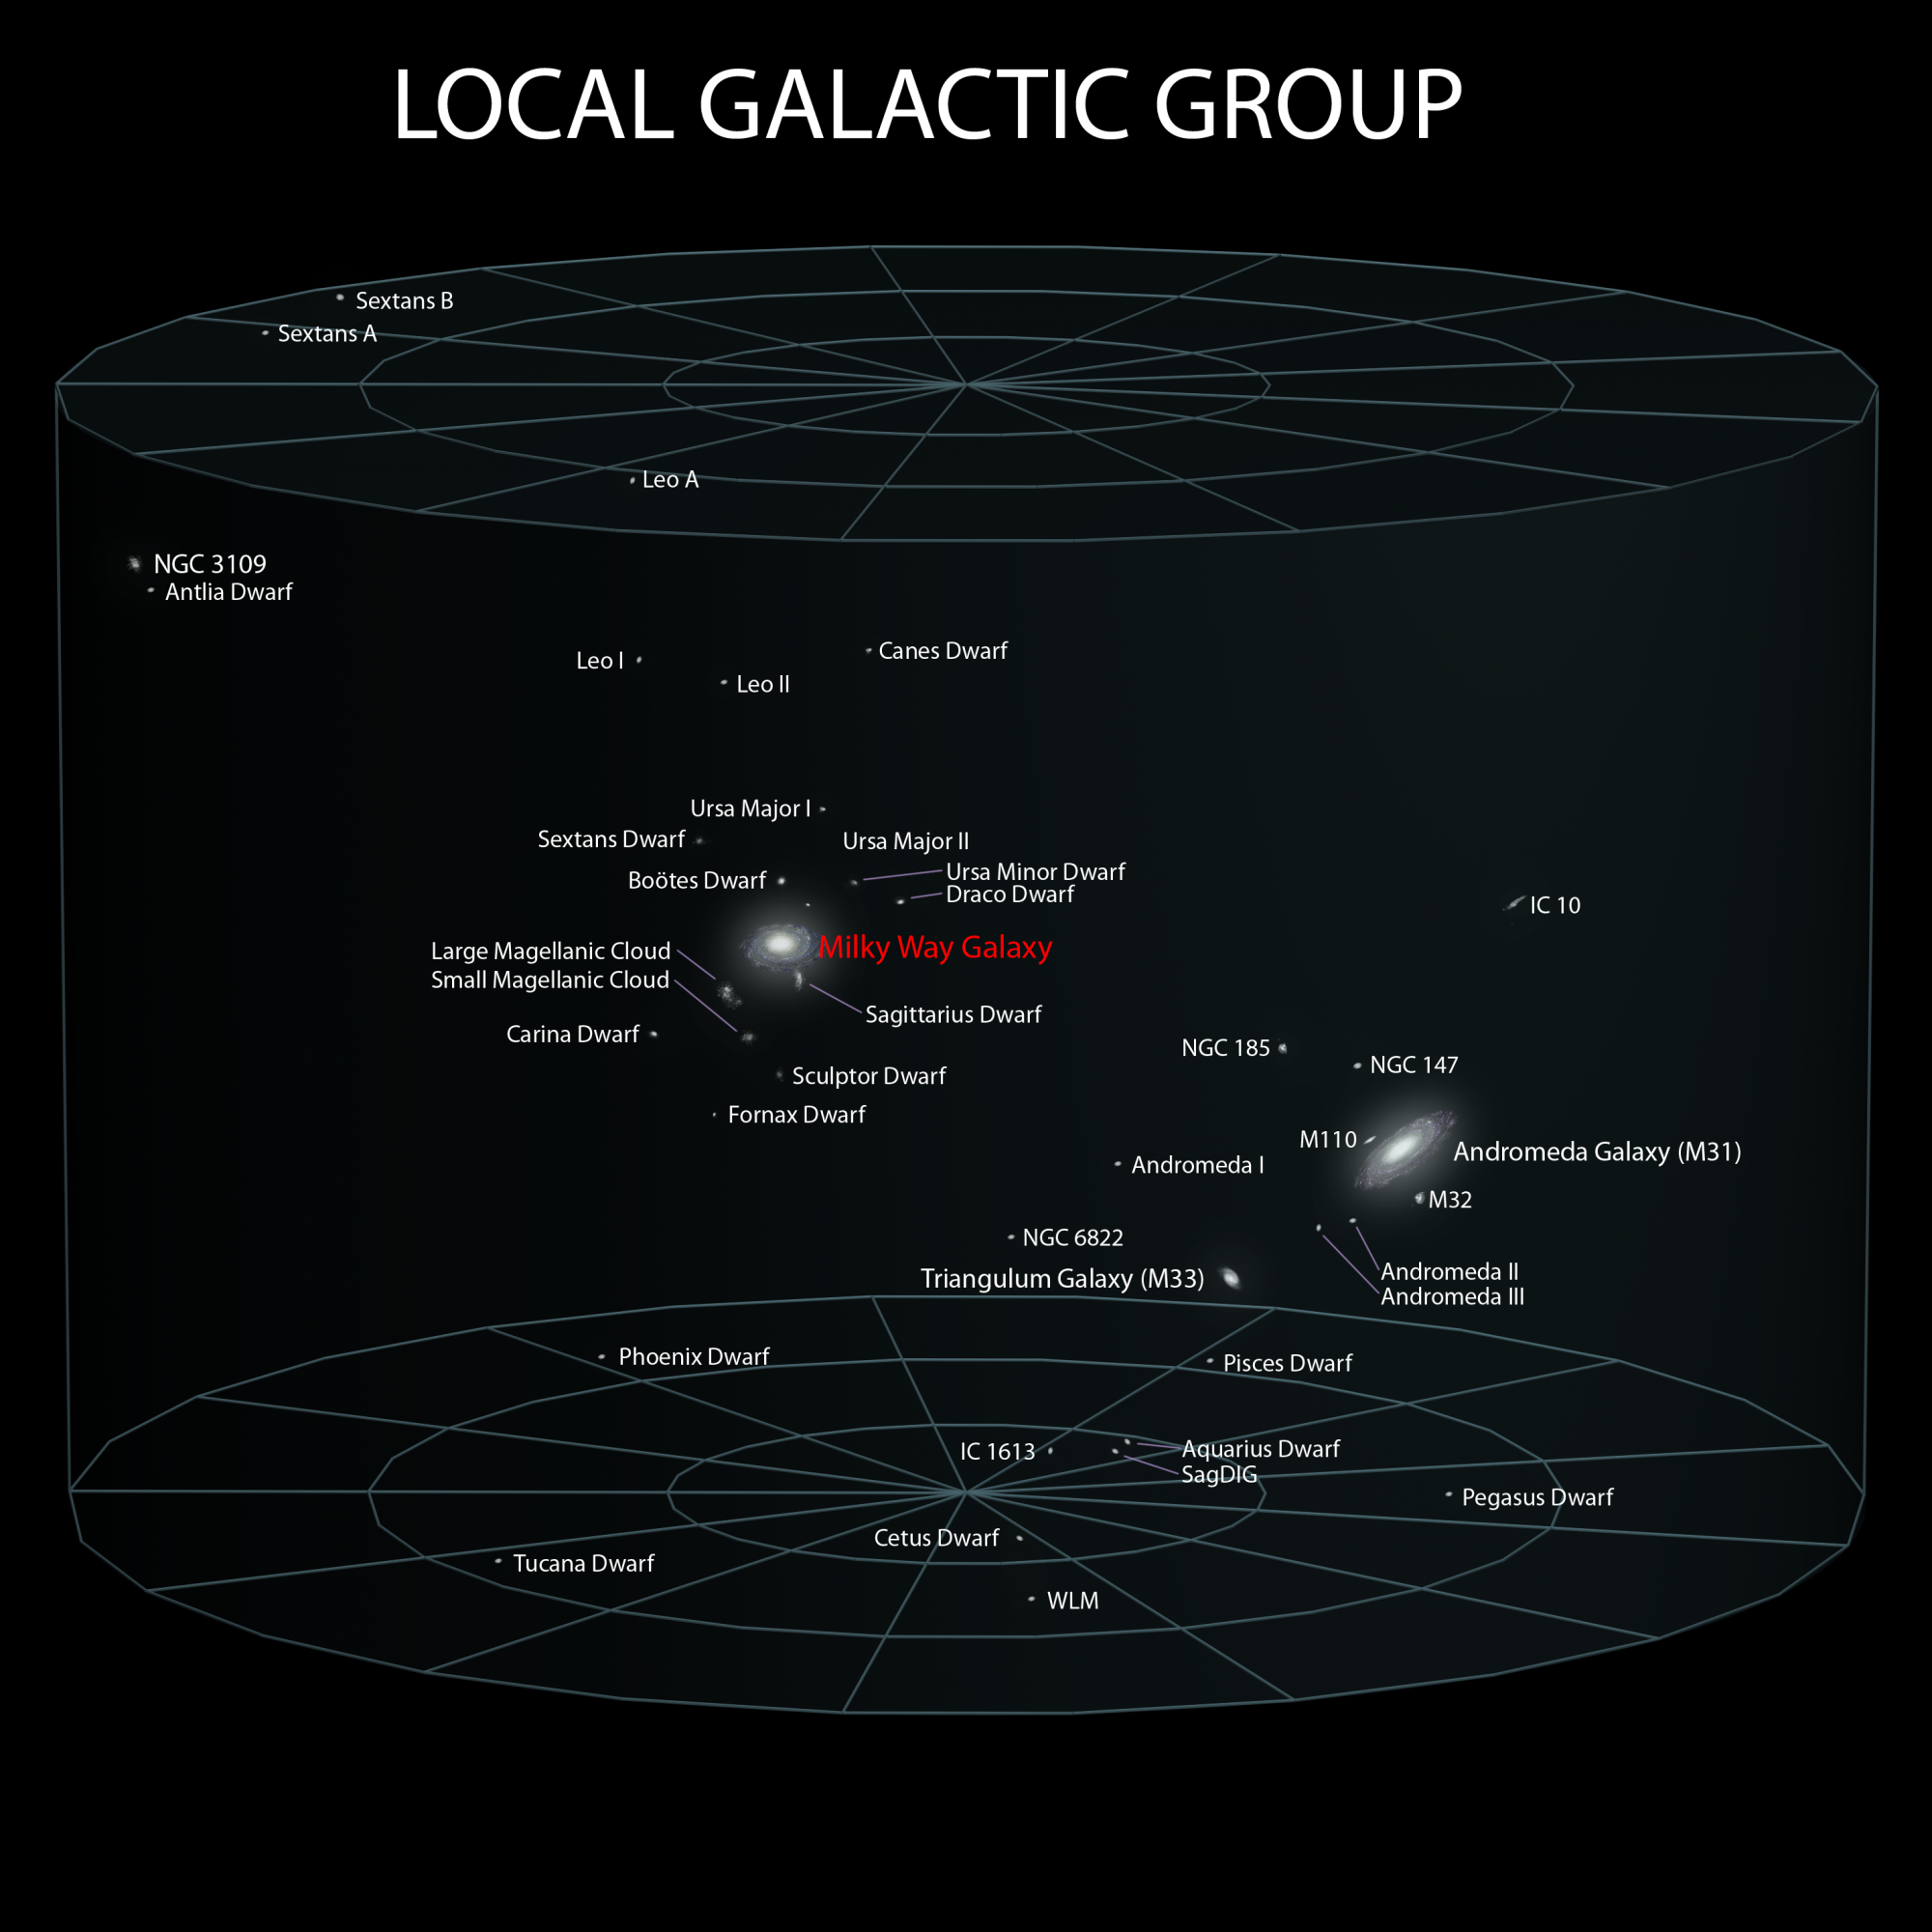 The local group of galaxies includes the Andromeda Galaxy, at about 2.5 million light-years away, and a small zoo of satellite galaxies clustering around the Milky Way, several of which were used in the research described here. Only a fraction of the know